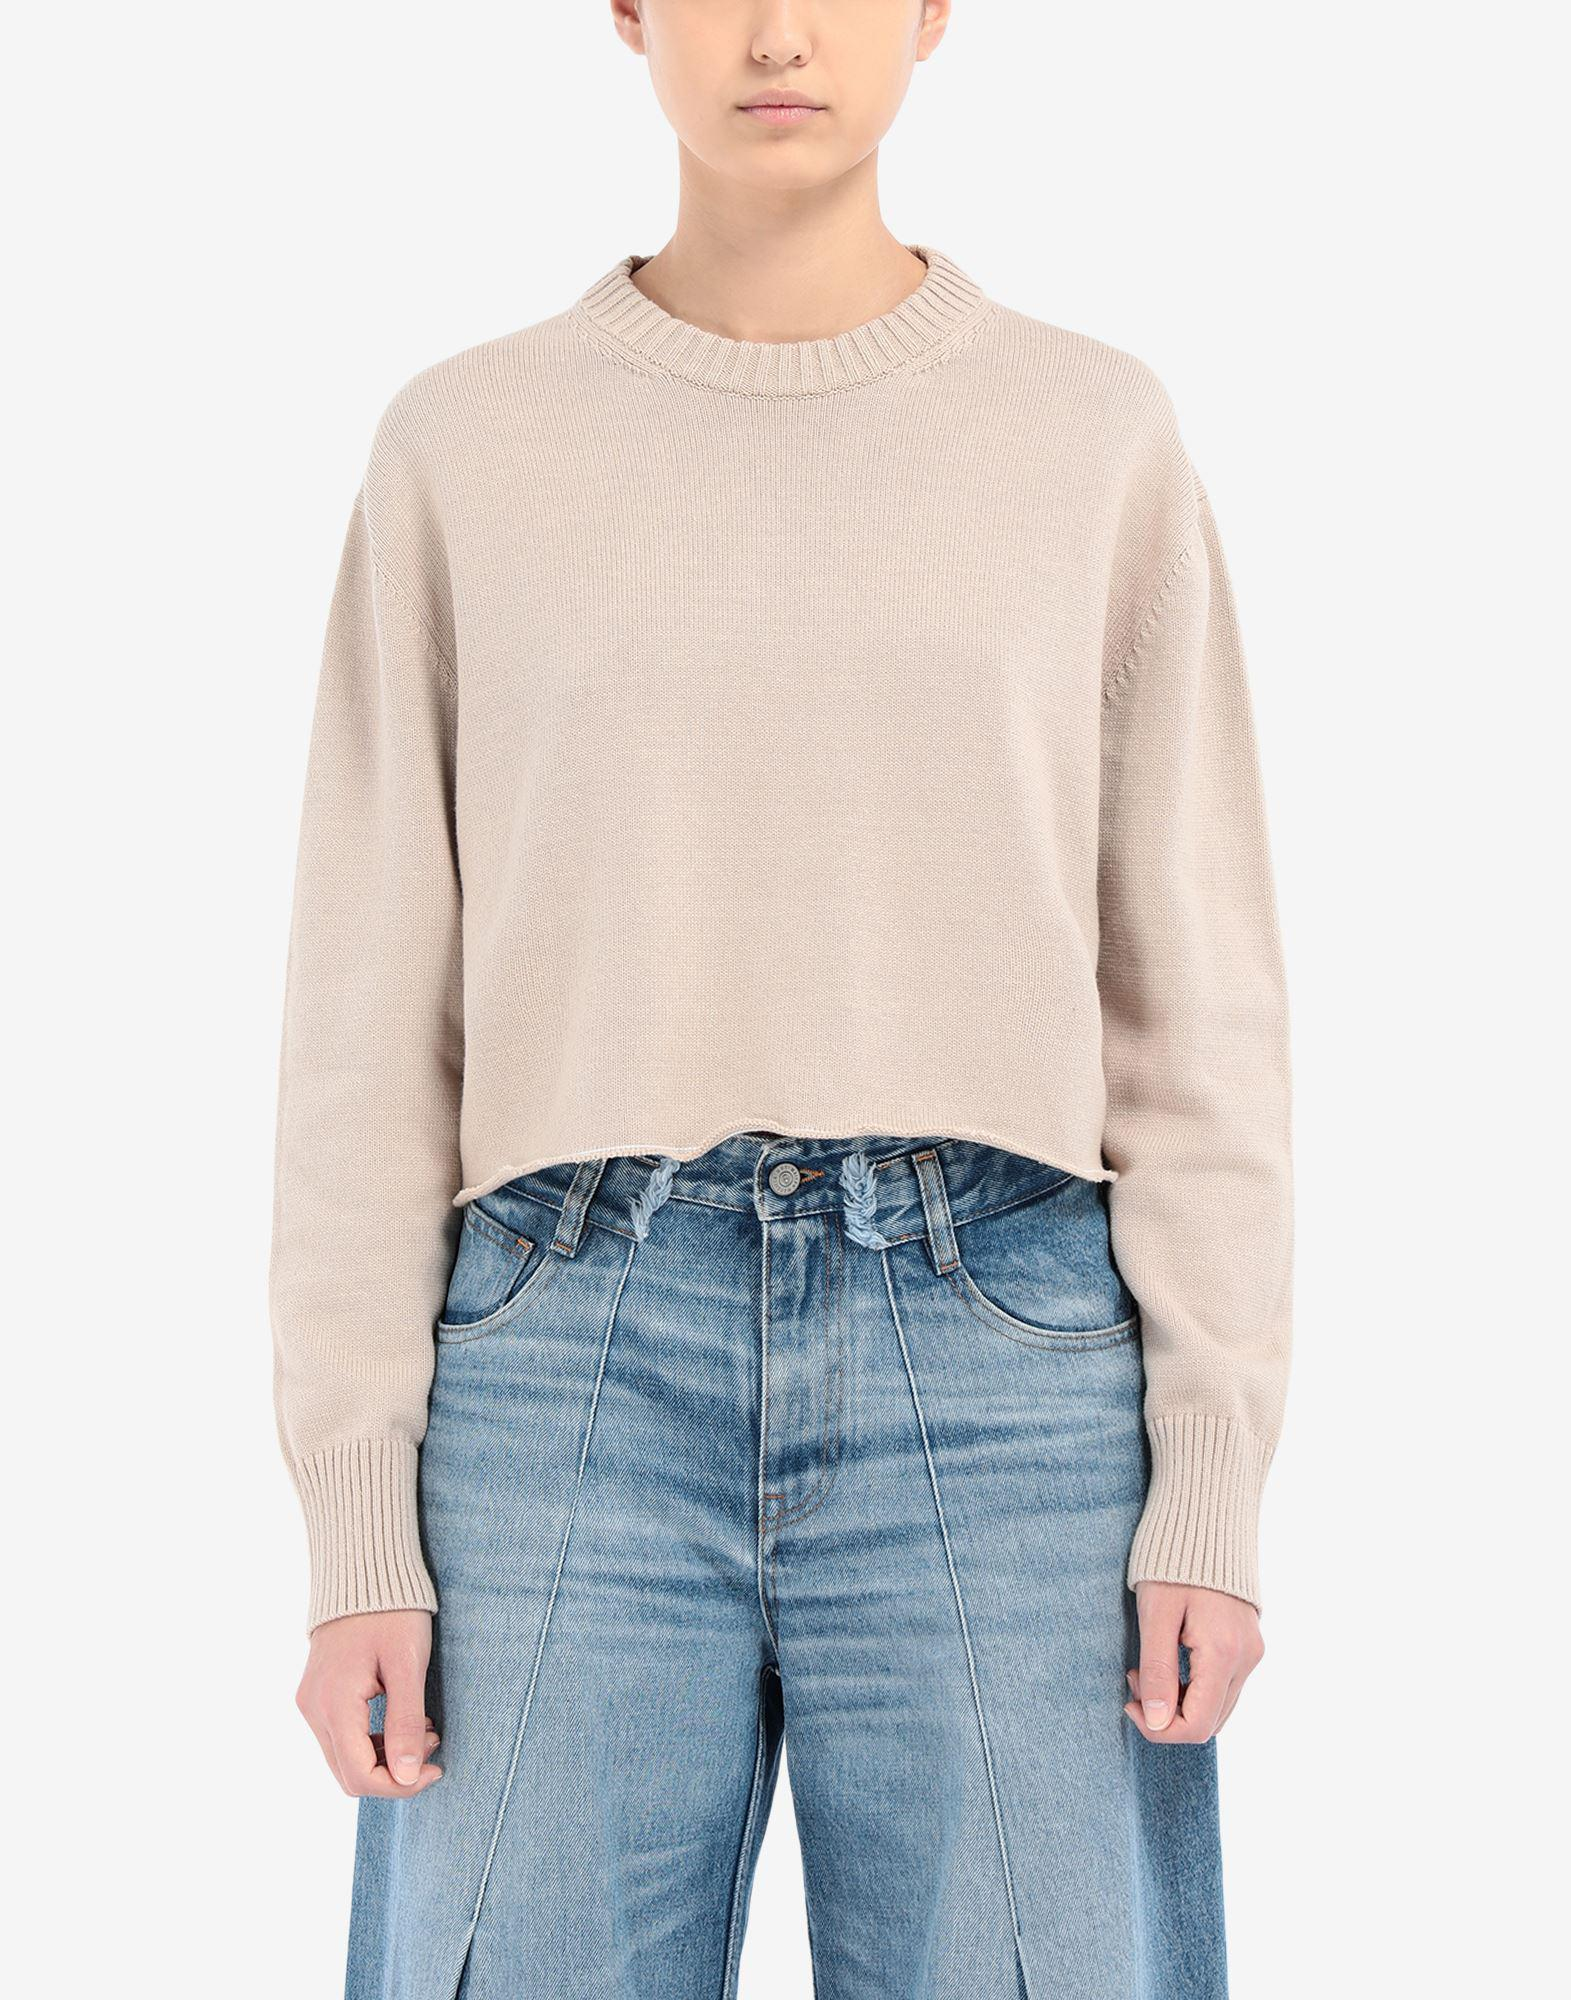 Elbow patch sweater 3